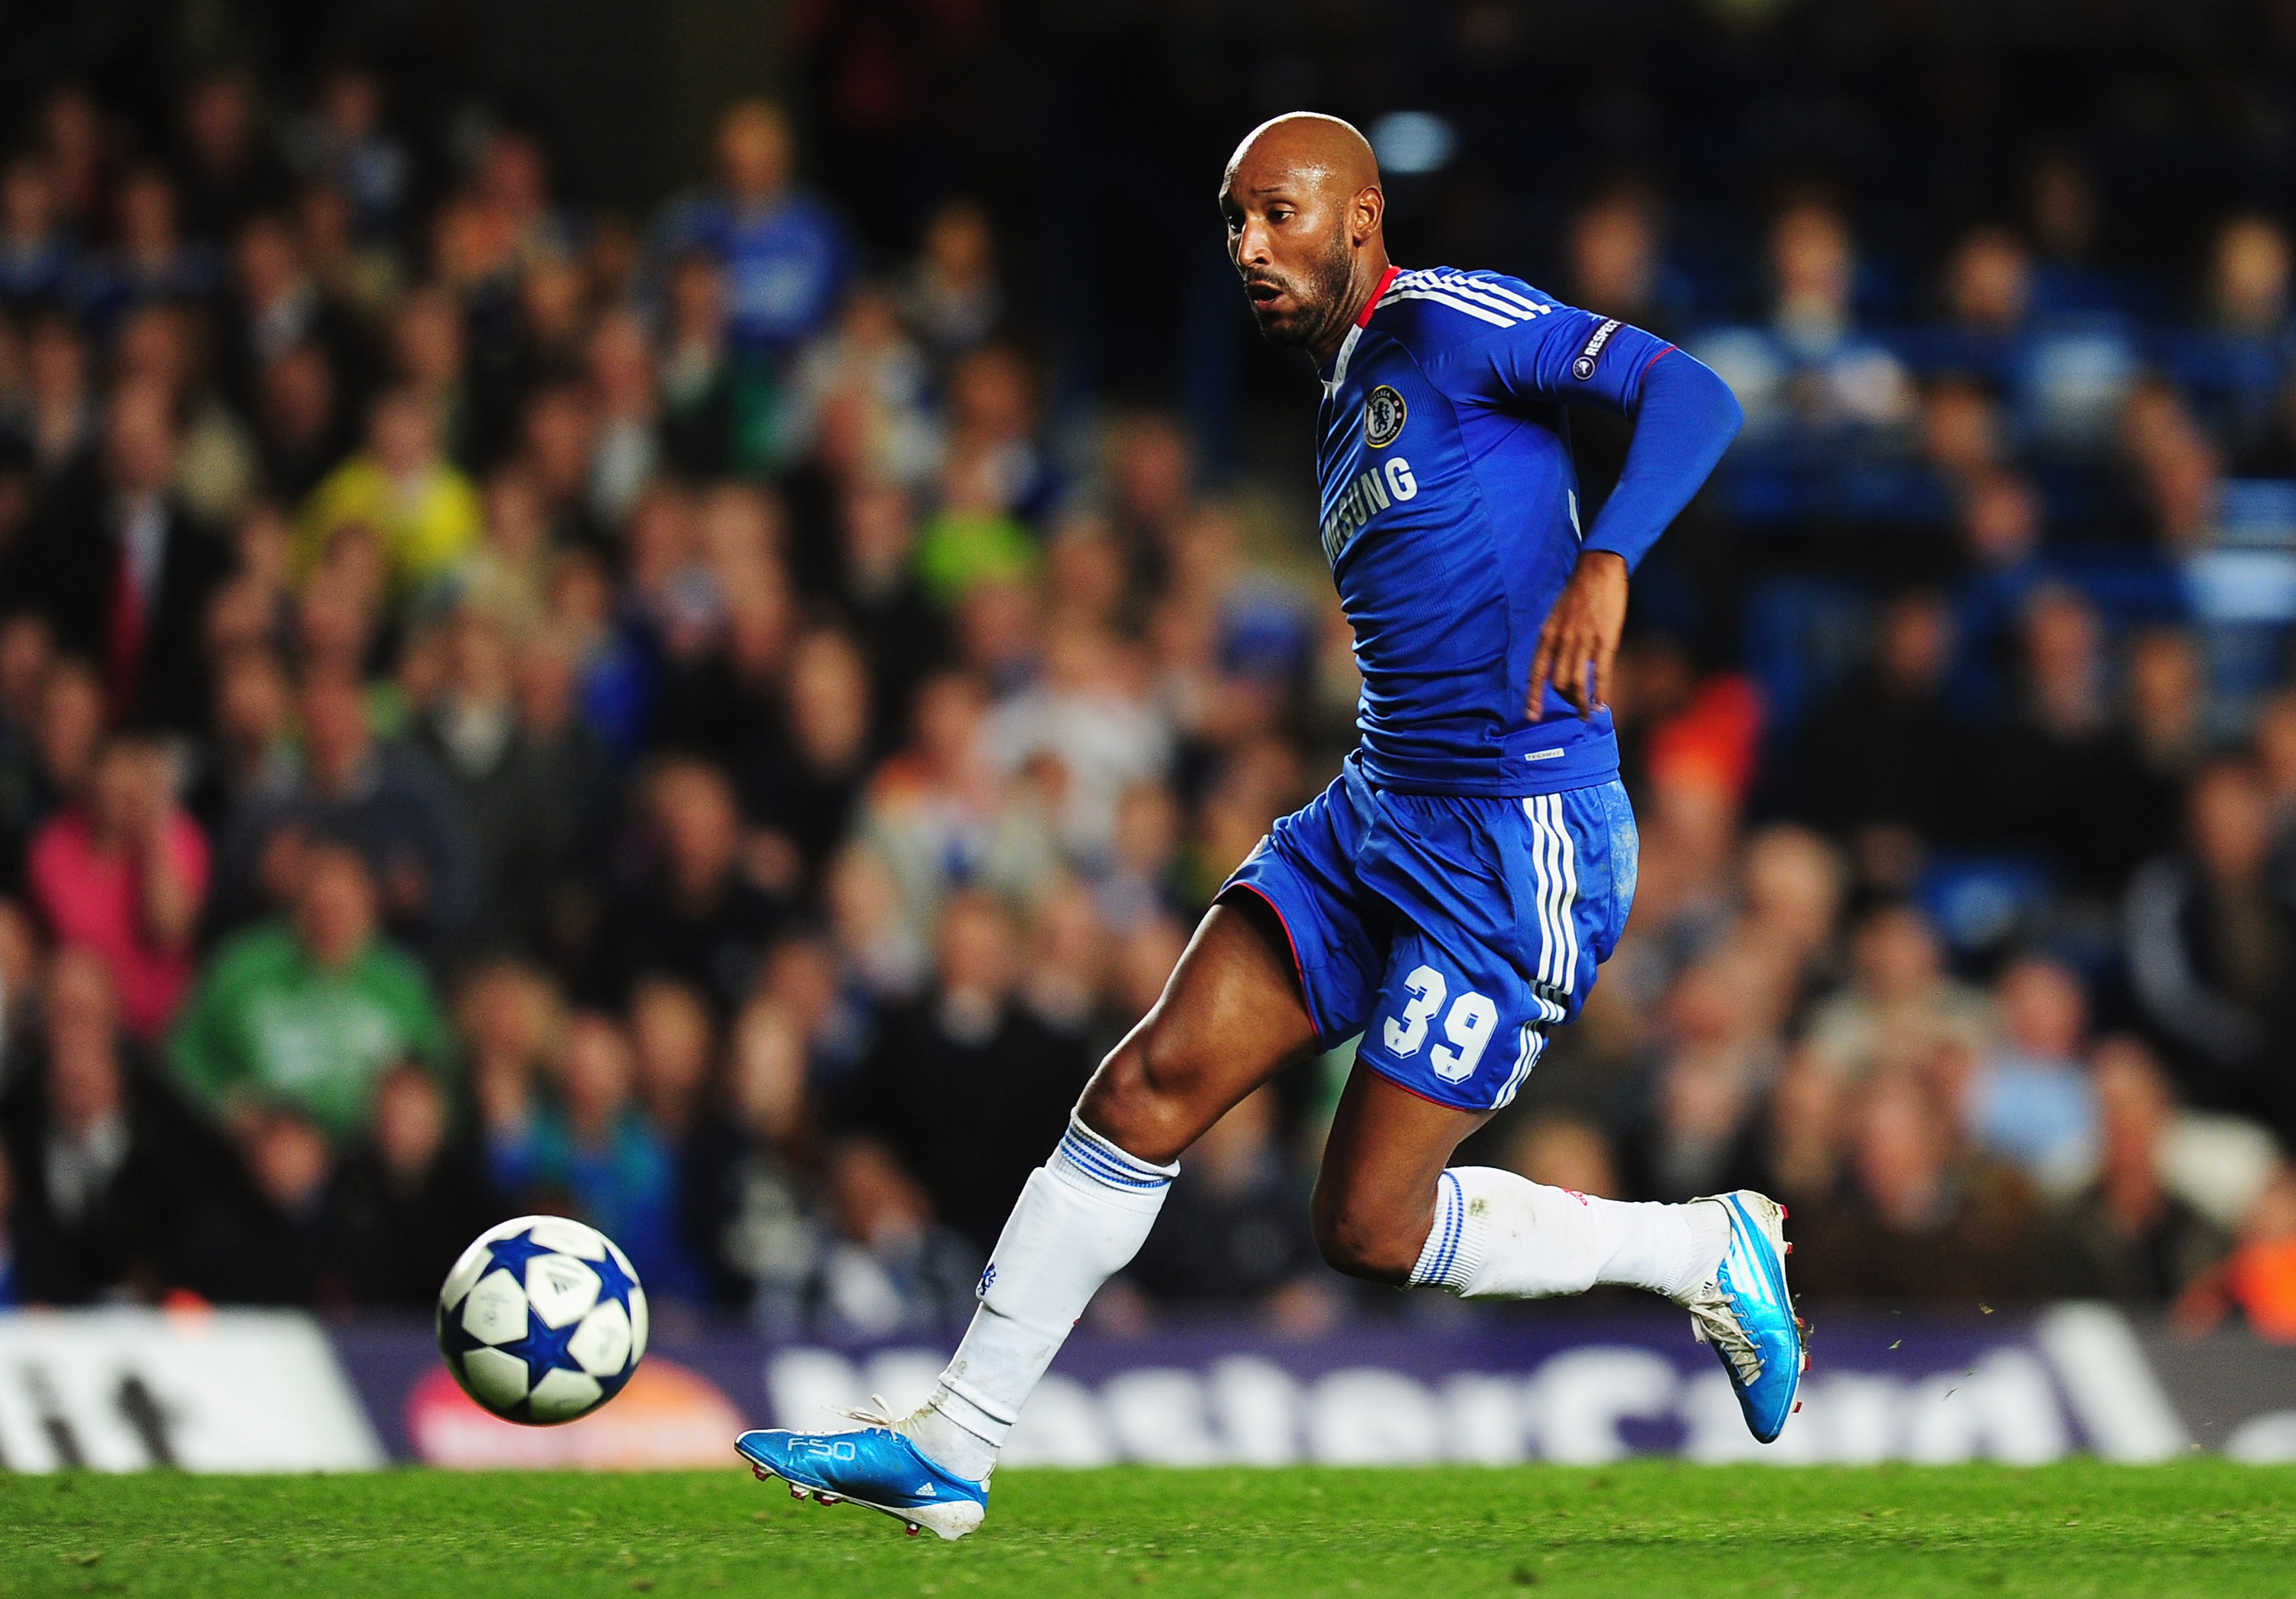 LONDON, ENGLAND - NOVEMBER 03:  Nicolas Anelka of Chelsea in action during the UEFA Champions League Group F match between Chelsea and Spartak Moscow at Stamford Bridge on November 3, 2010 in London, England.  (Photo by Mike Hewitt/Getty Images)